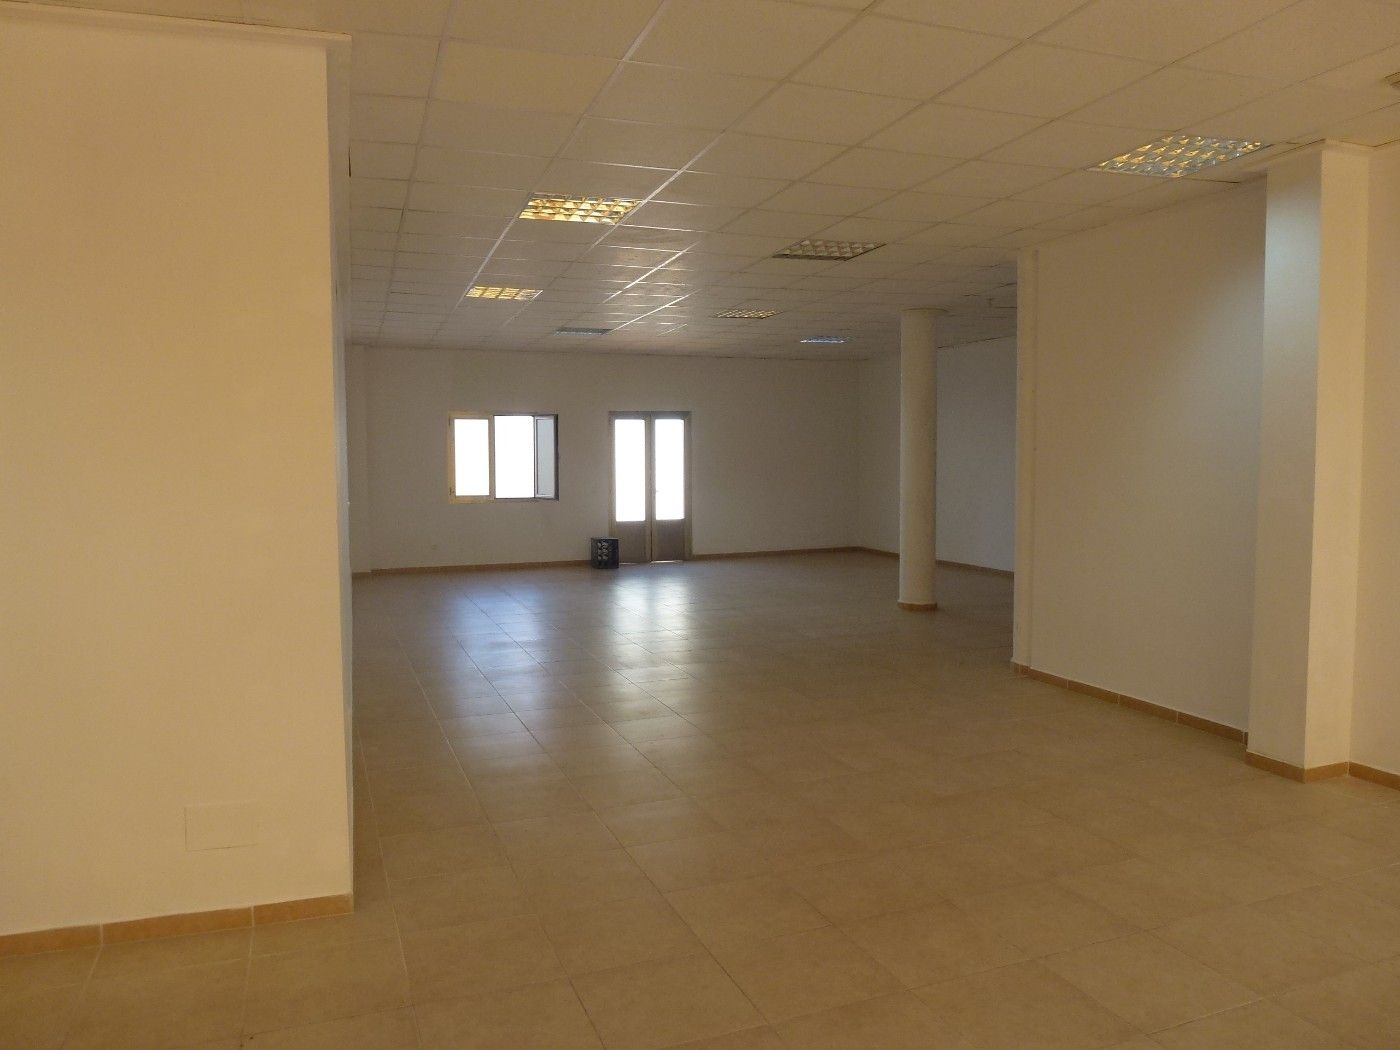 Local Comercial  Carrer anselm turmeda. Local de 117 m2  en binissalem